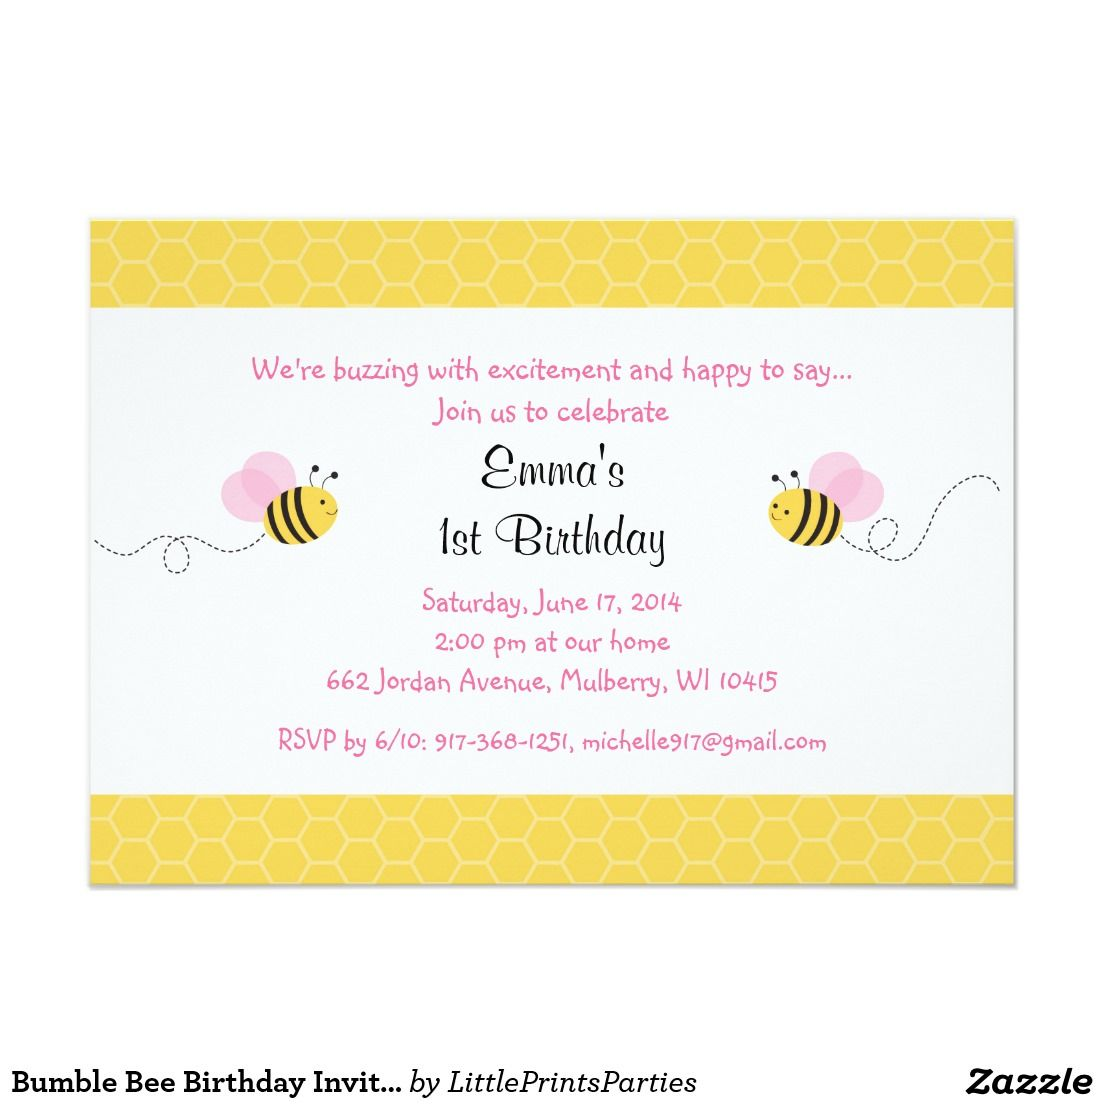 Bumble Bee Birthday Invitations | Olivia turns 1 | Pinterest ...